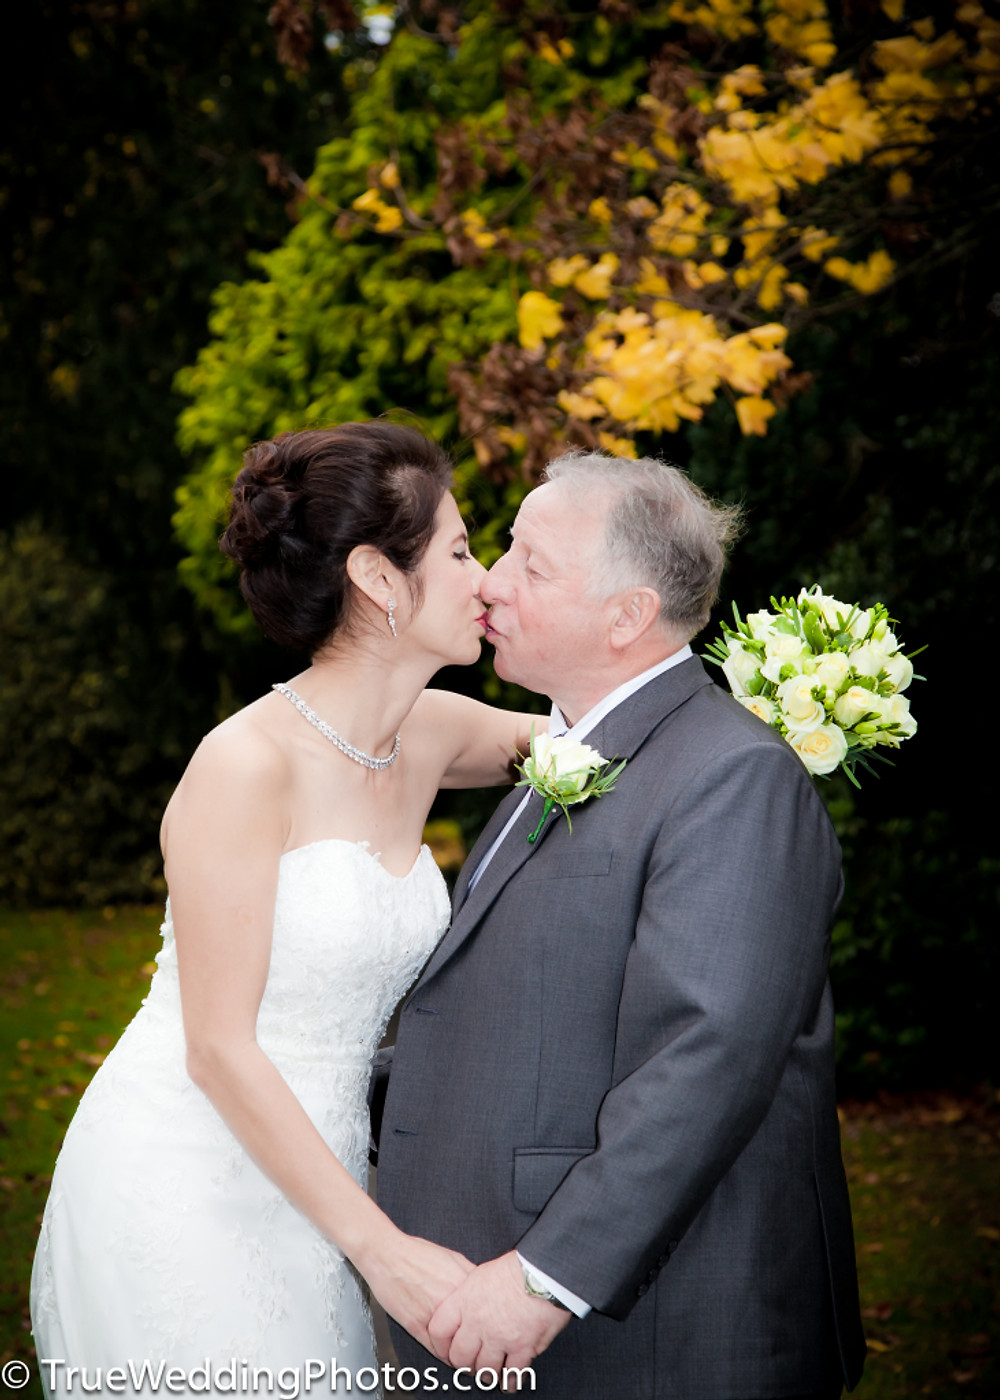 TrueWeddingPhotos.com-9785